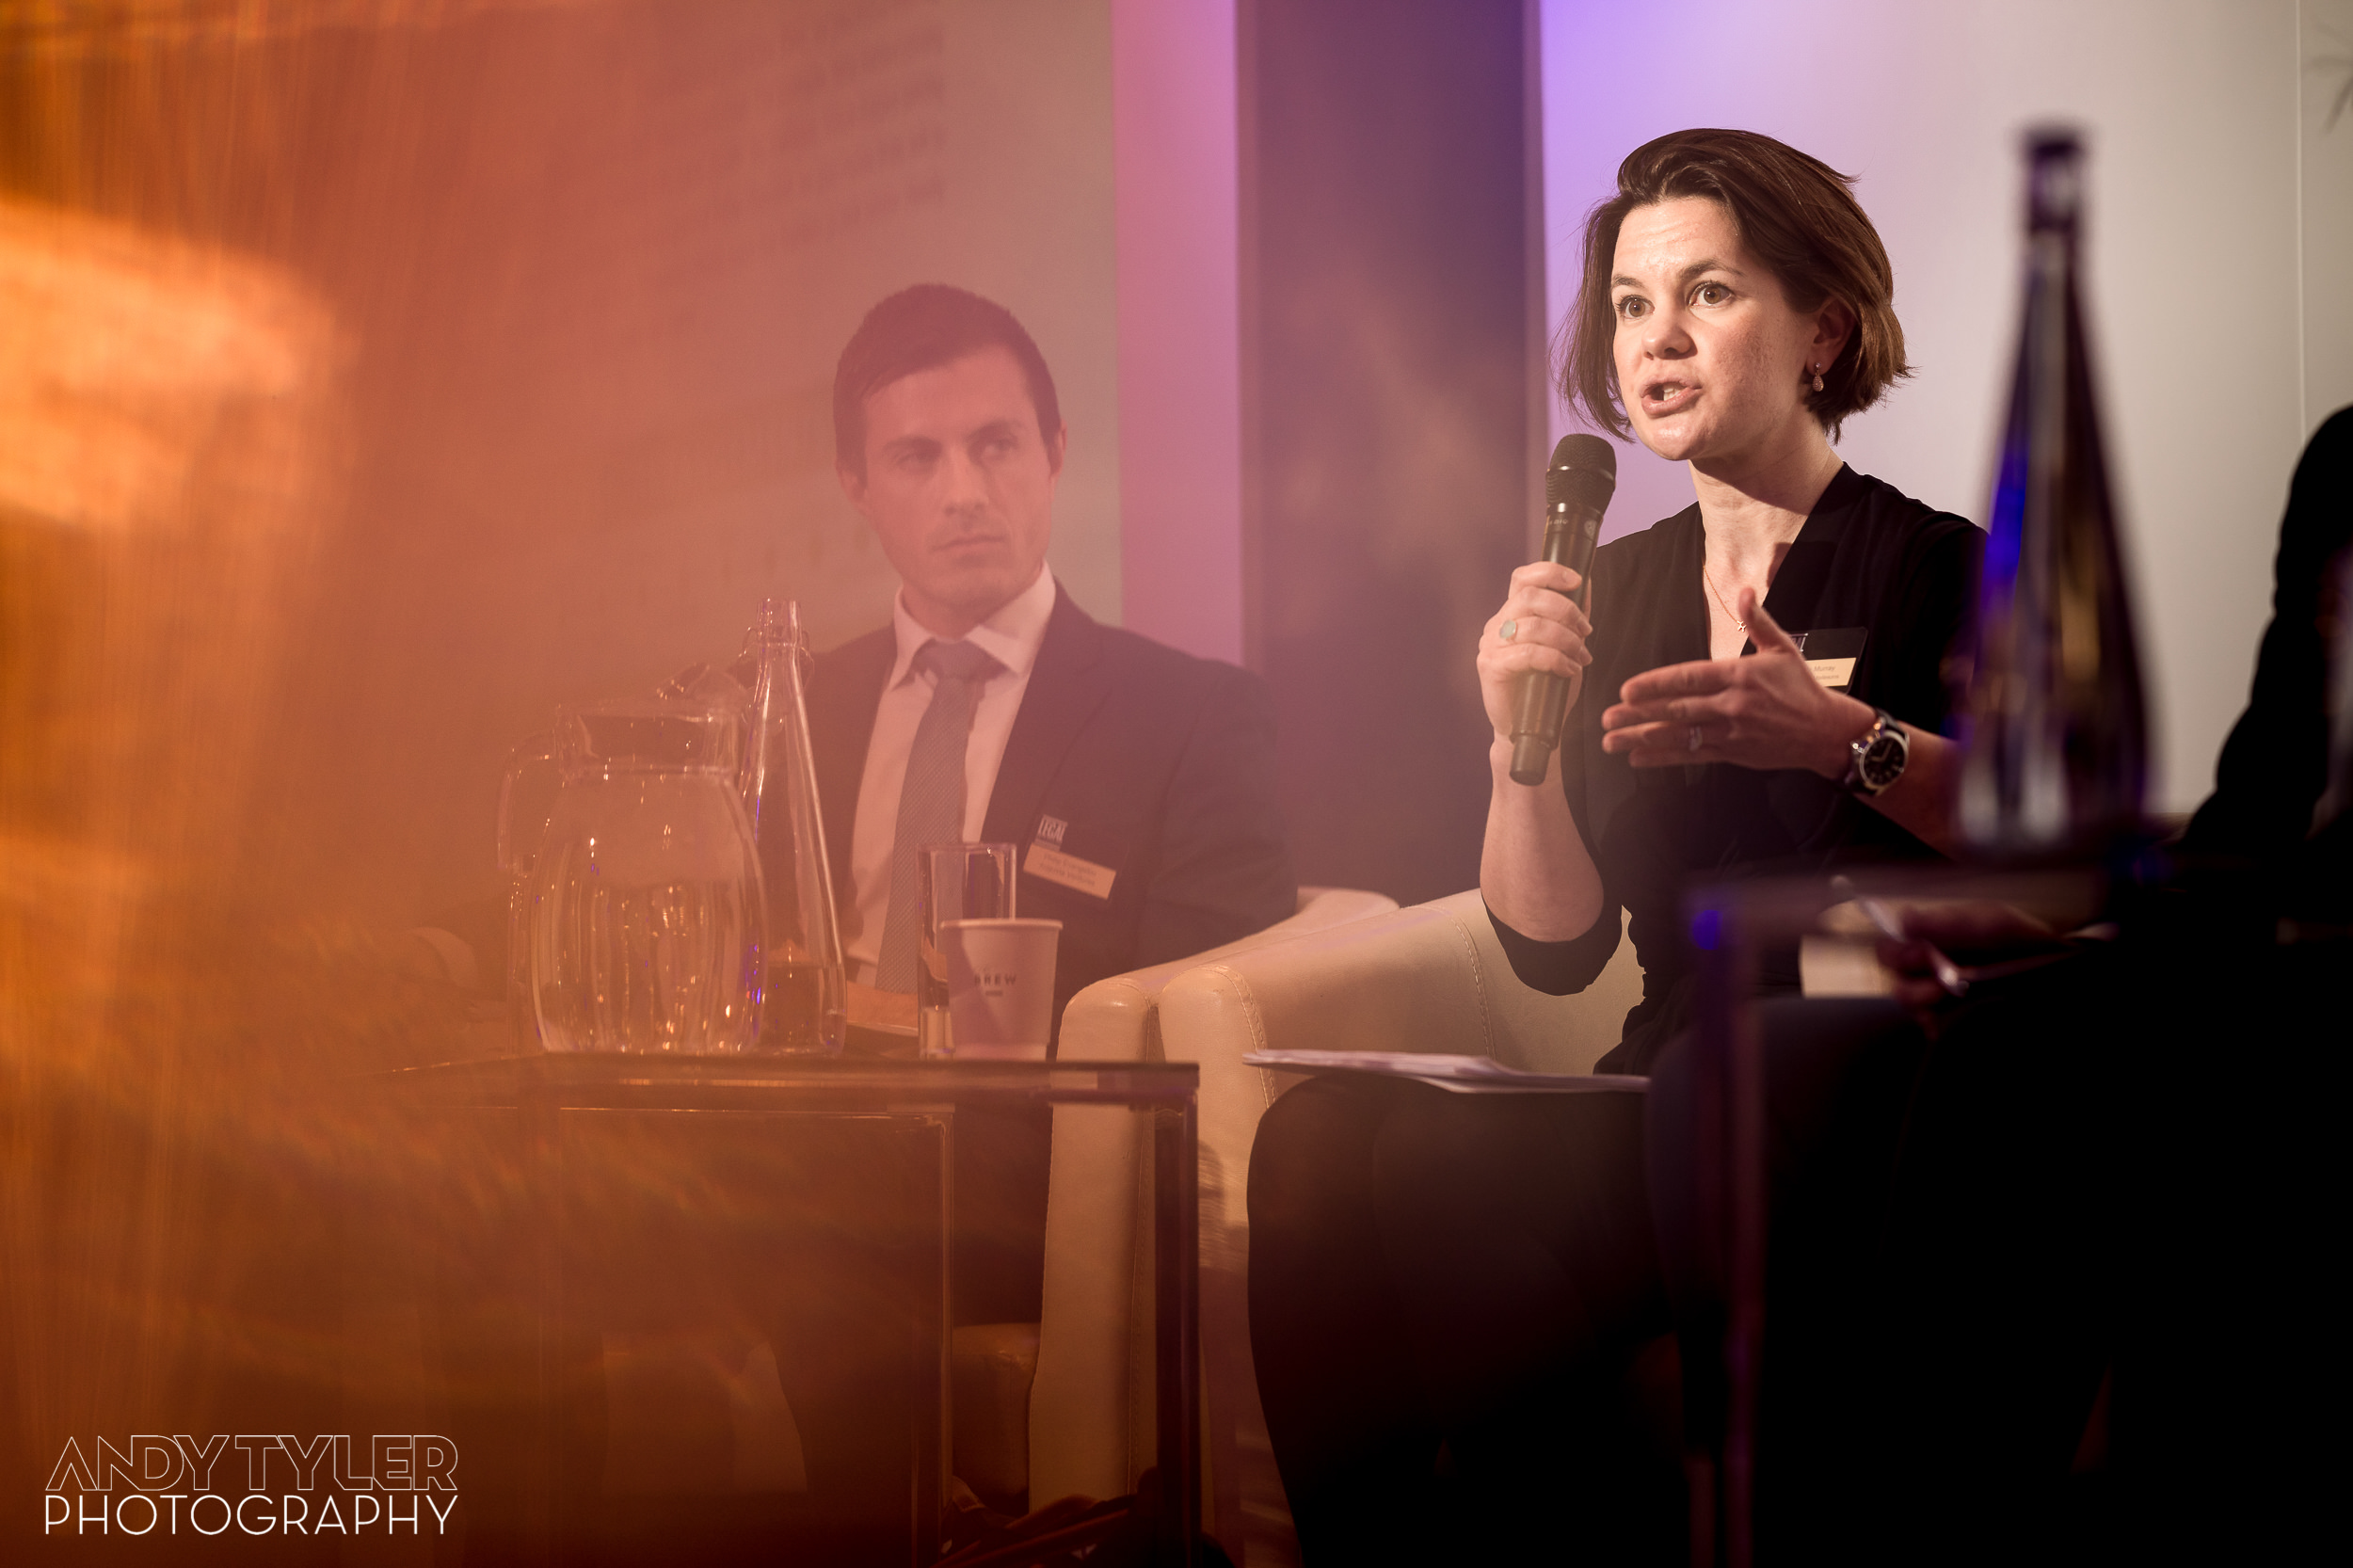 Andy_Tyler_Photography_Business_Conference_015_Andy_Tyler_Photography_257_5DA_1031.jpg